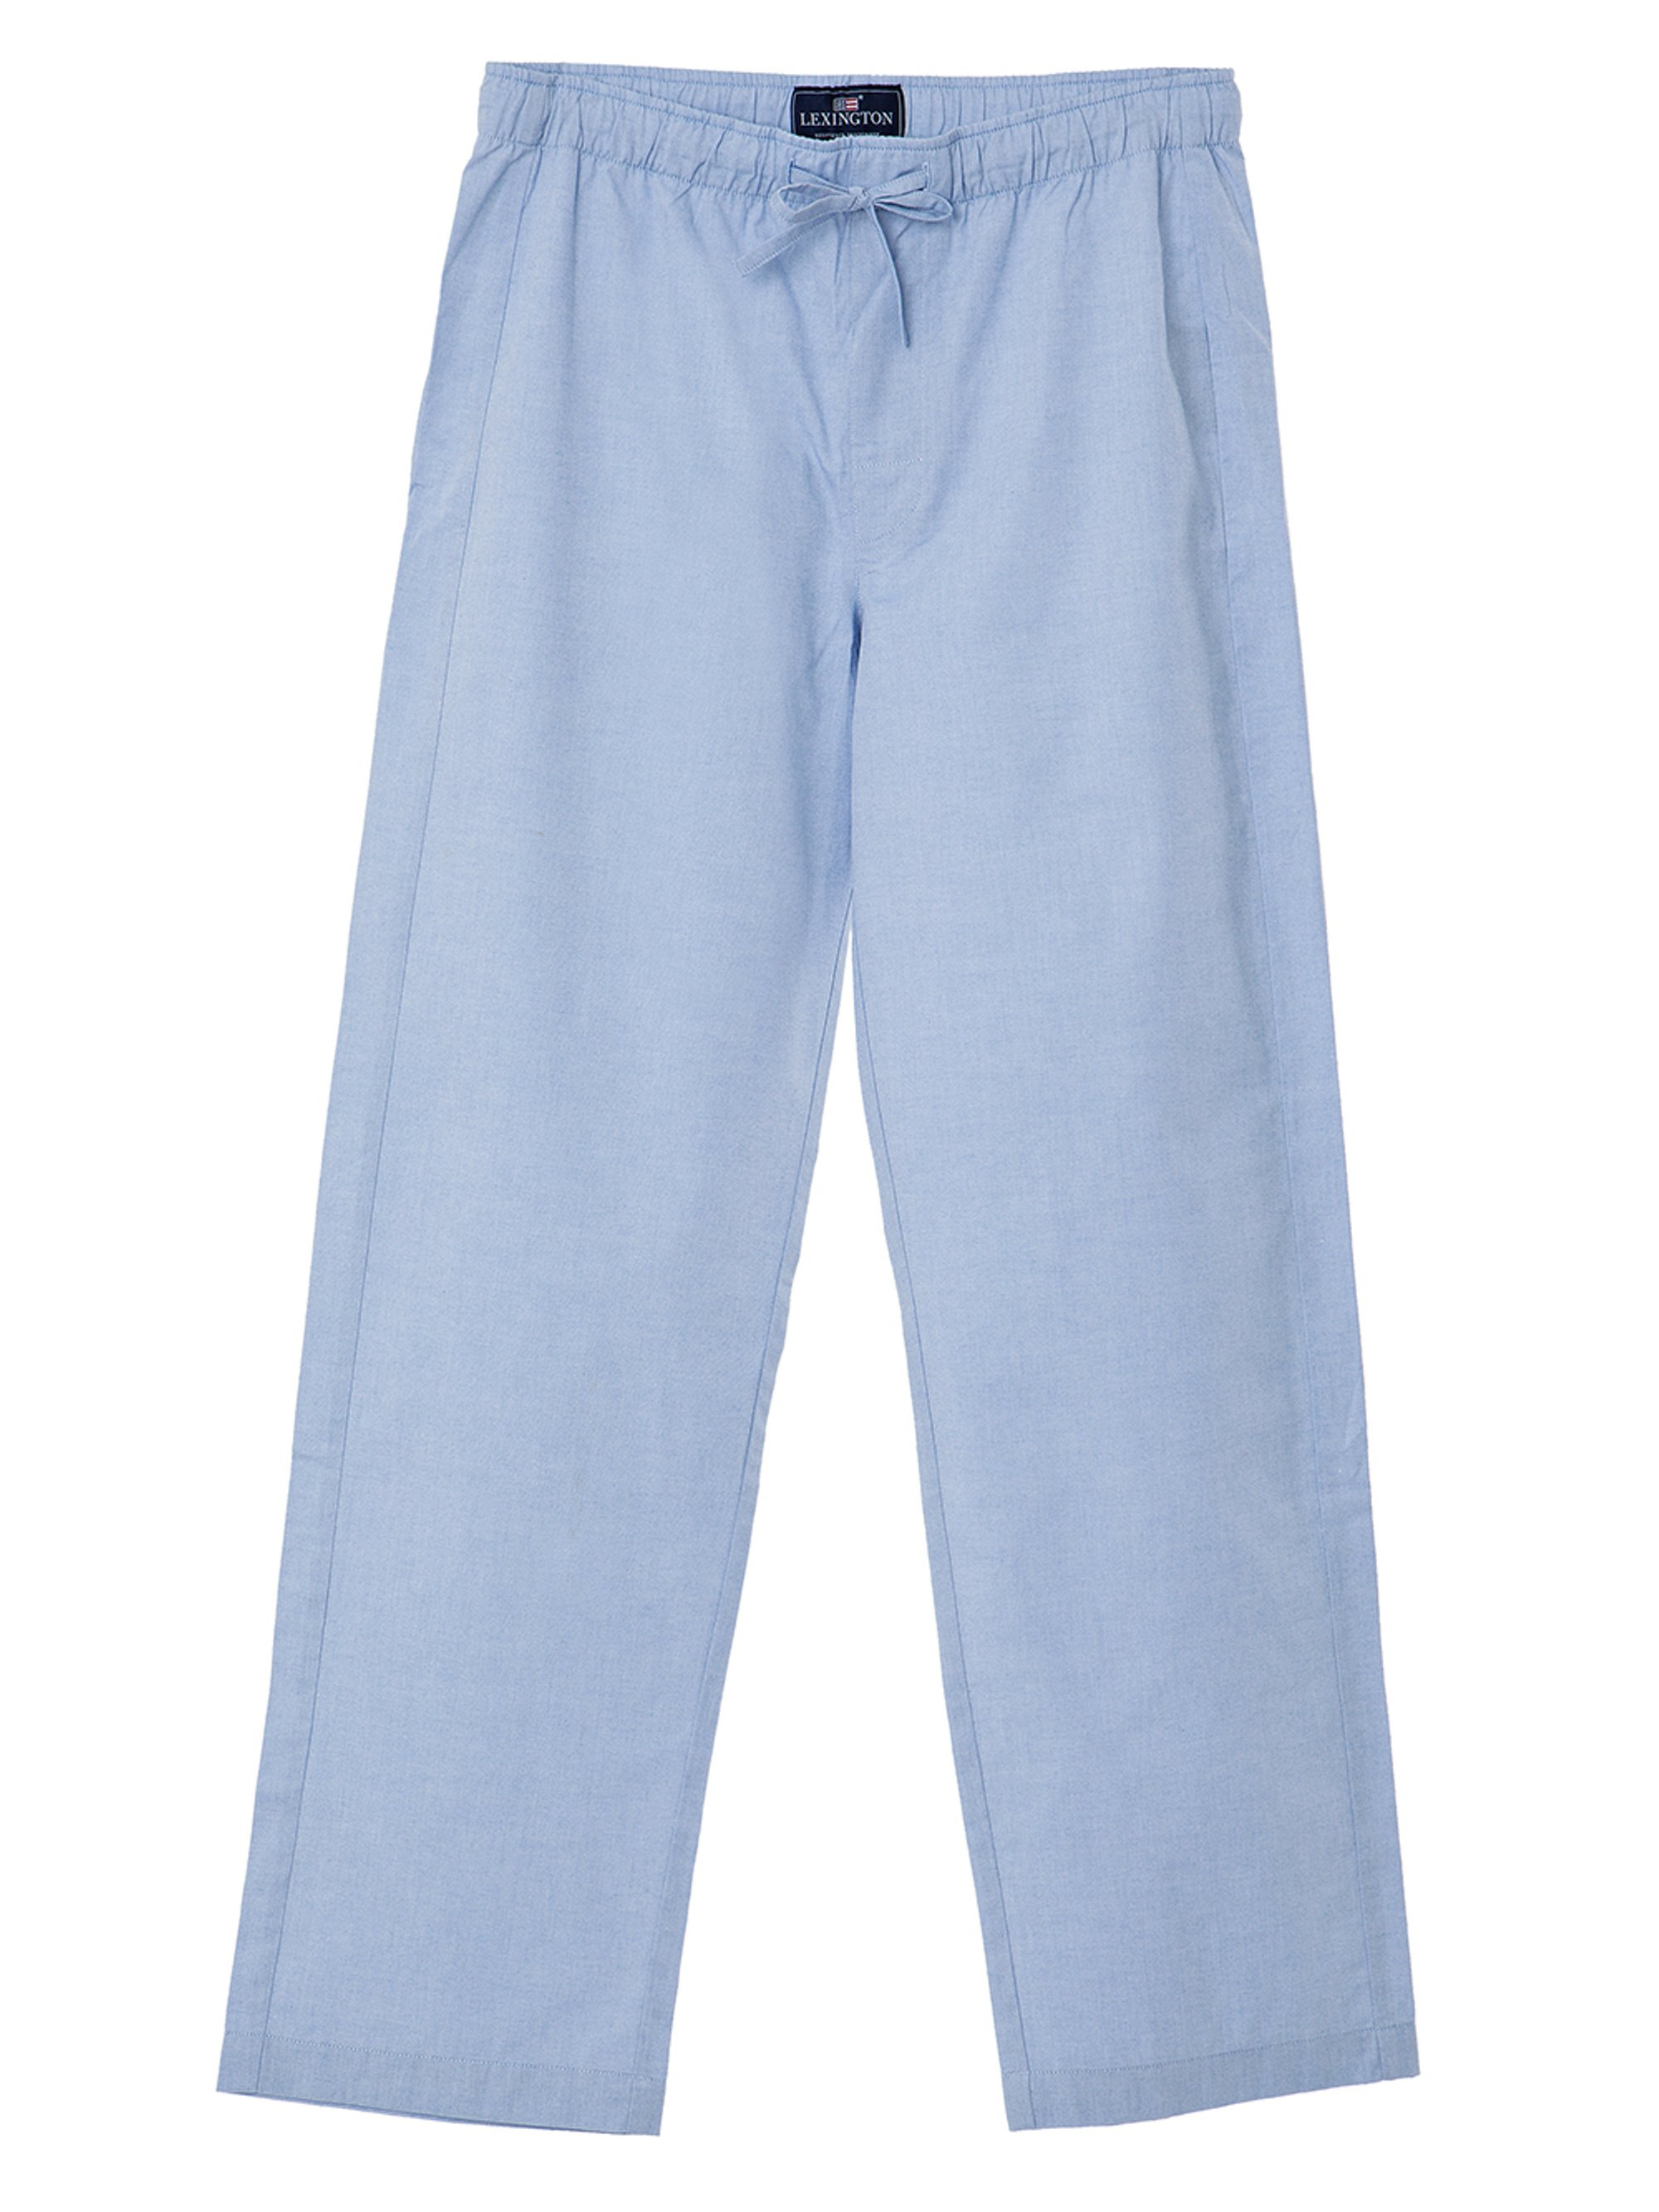 Scott Pajama, Light Blue